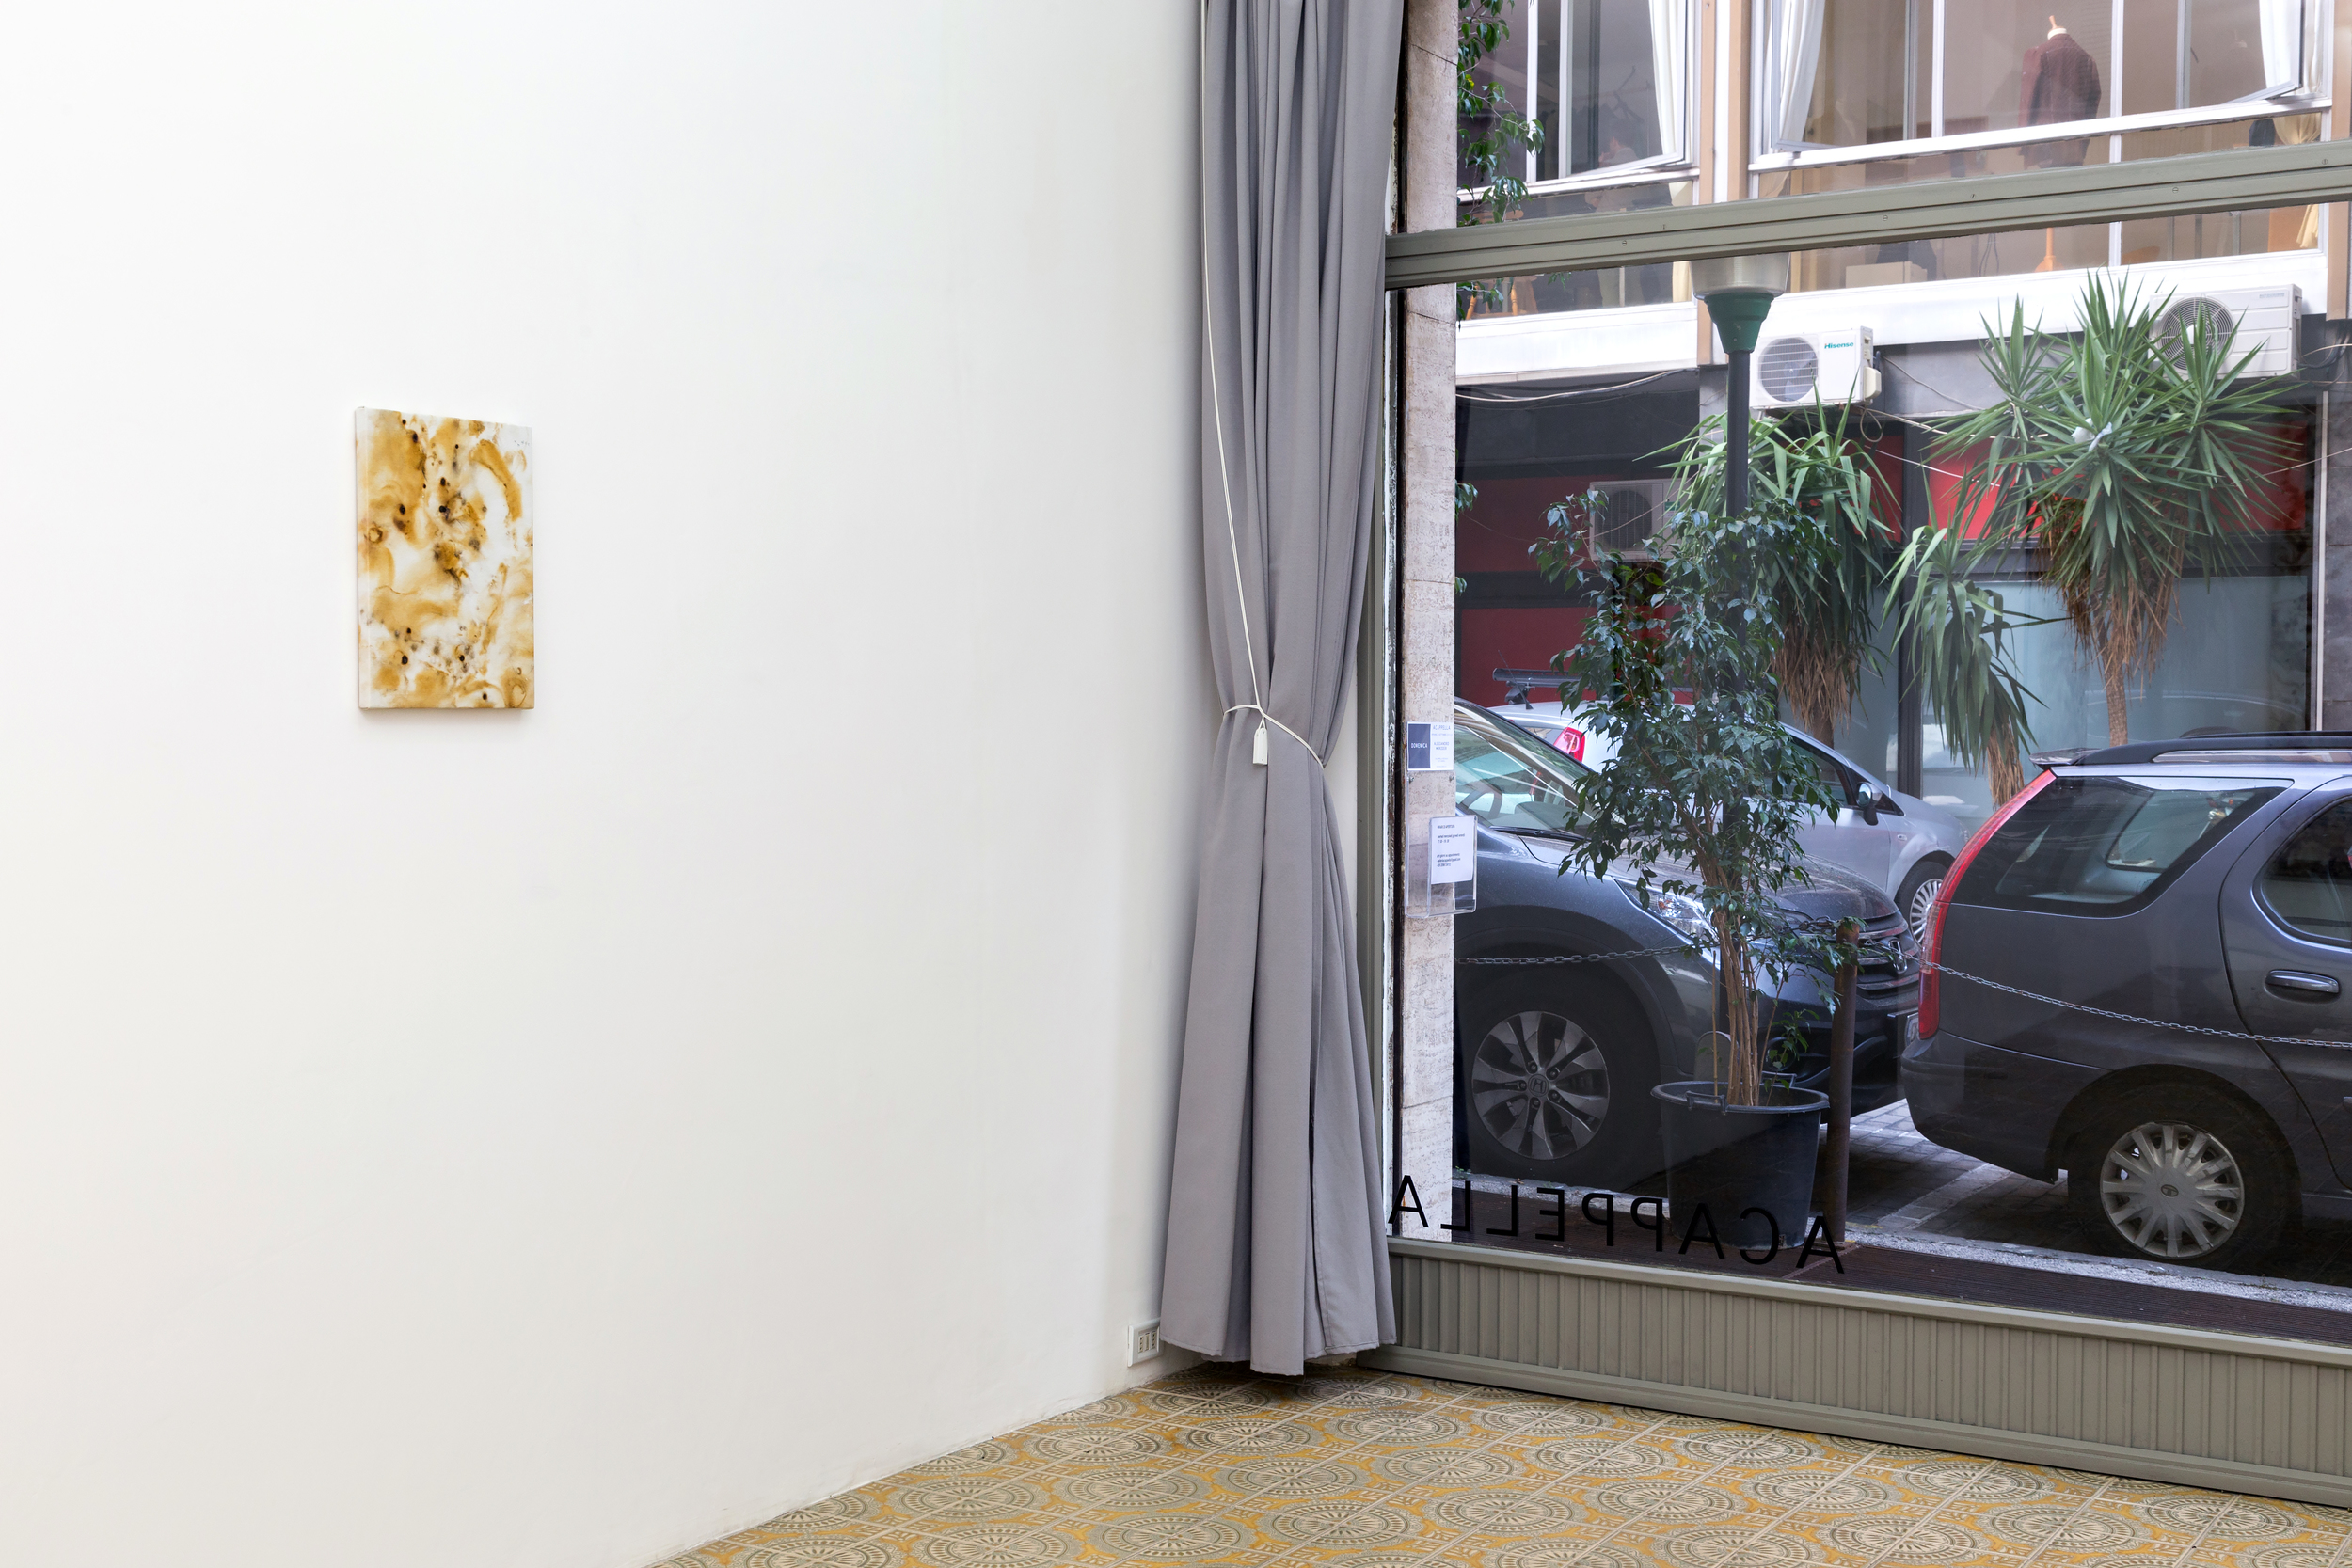 Flare Painting #73 (Sulle Gradinate, Scoppia L'Inferno), 2015  Installation shot for Domenica at Galleria Acappella. Naples, Italy